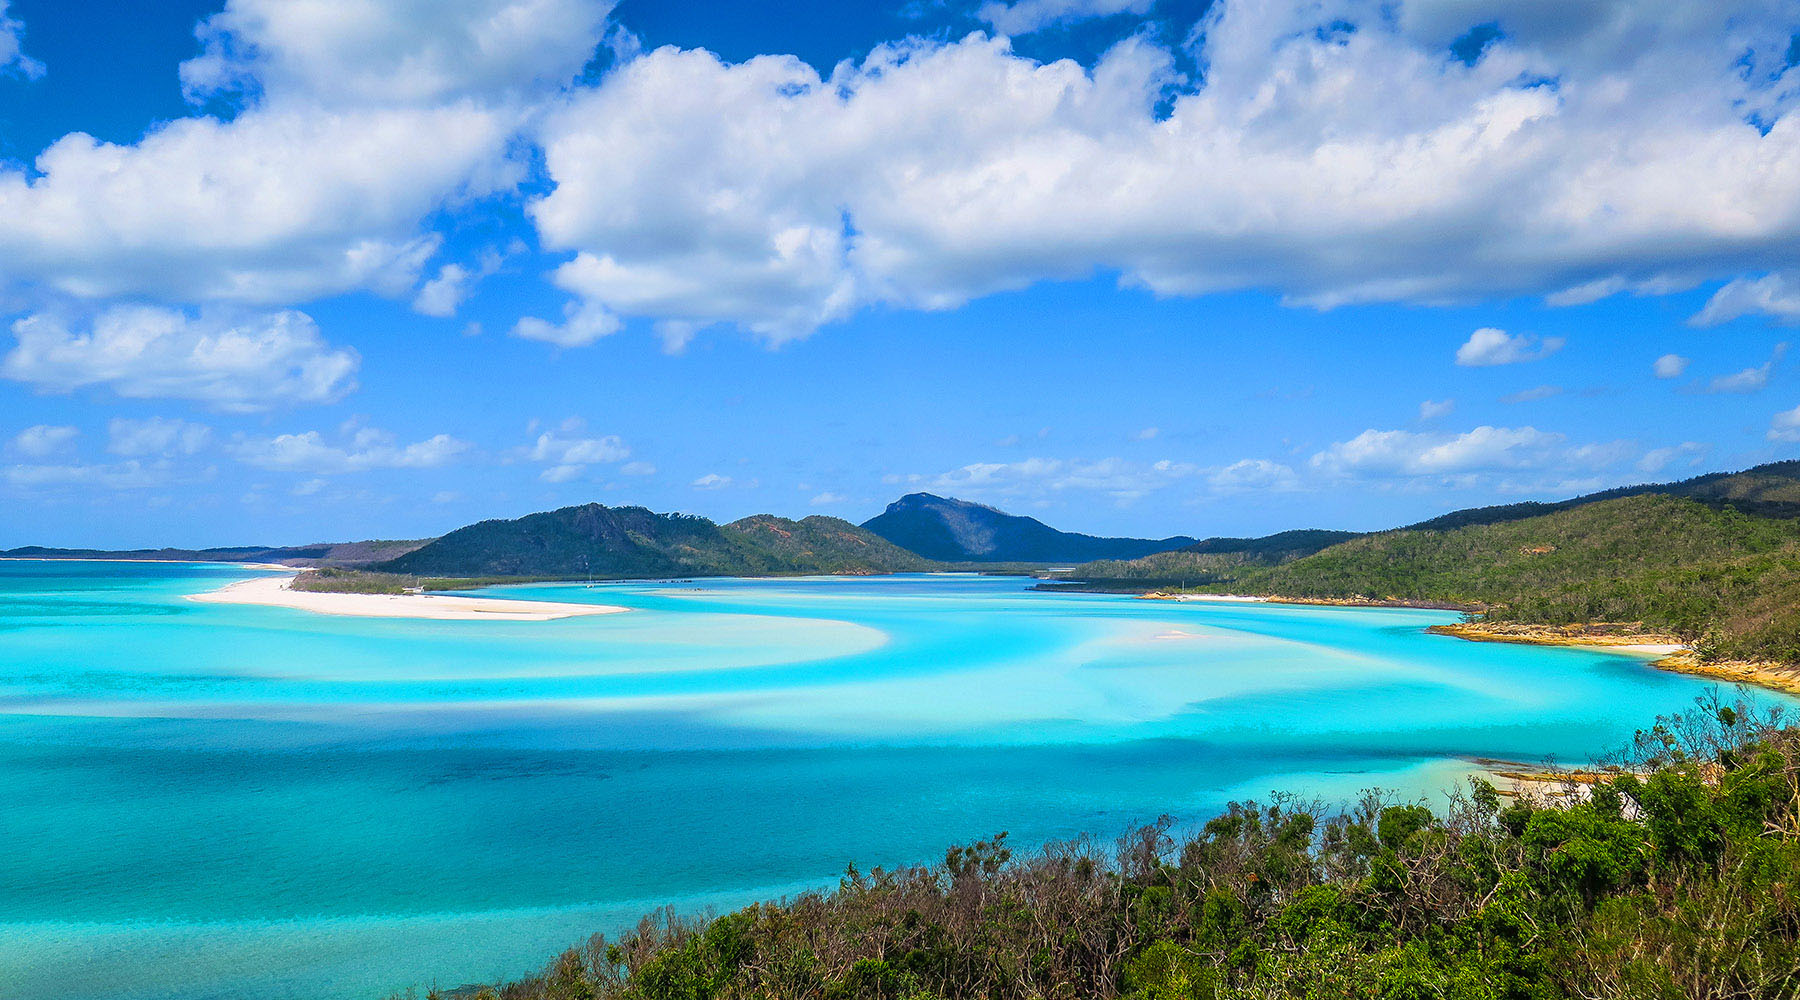 Luxury Voyages to Airlie Beach (Whitsundays), Australia